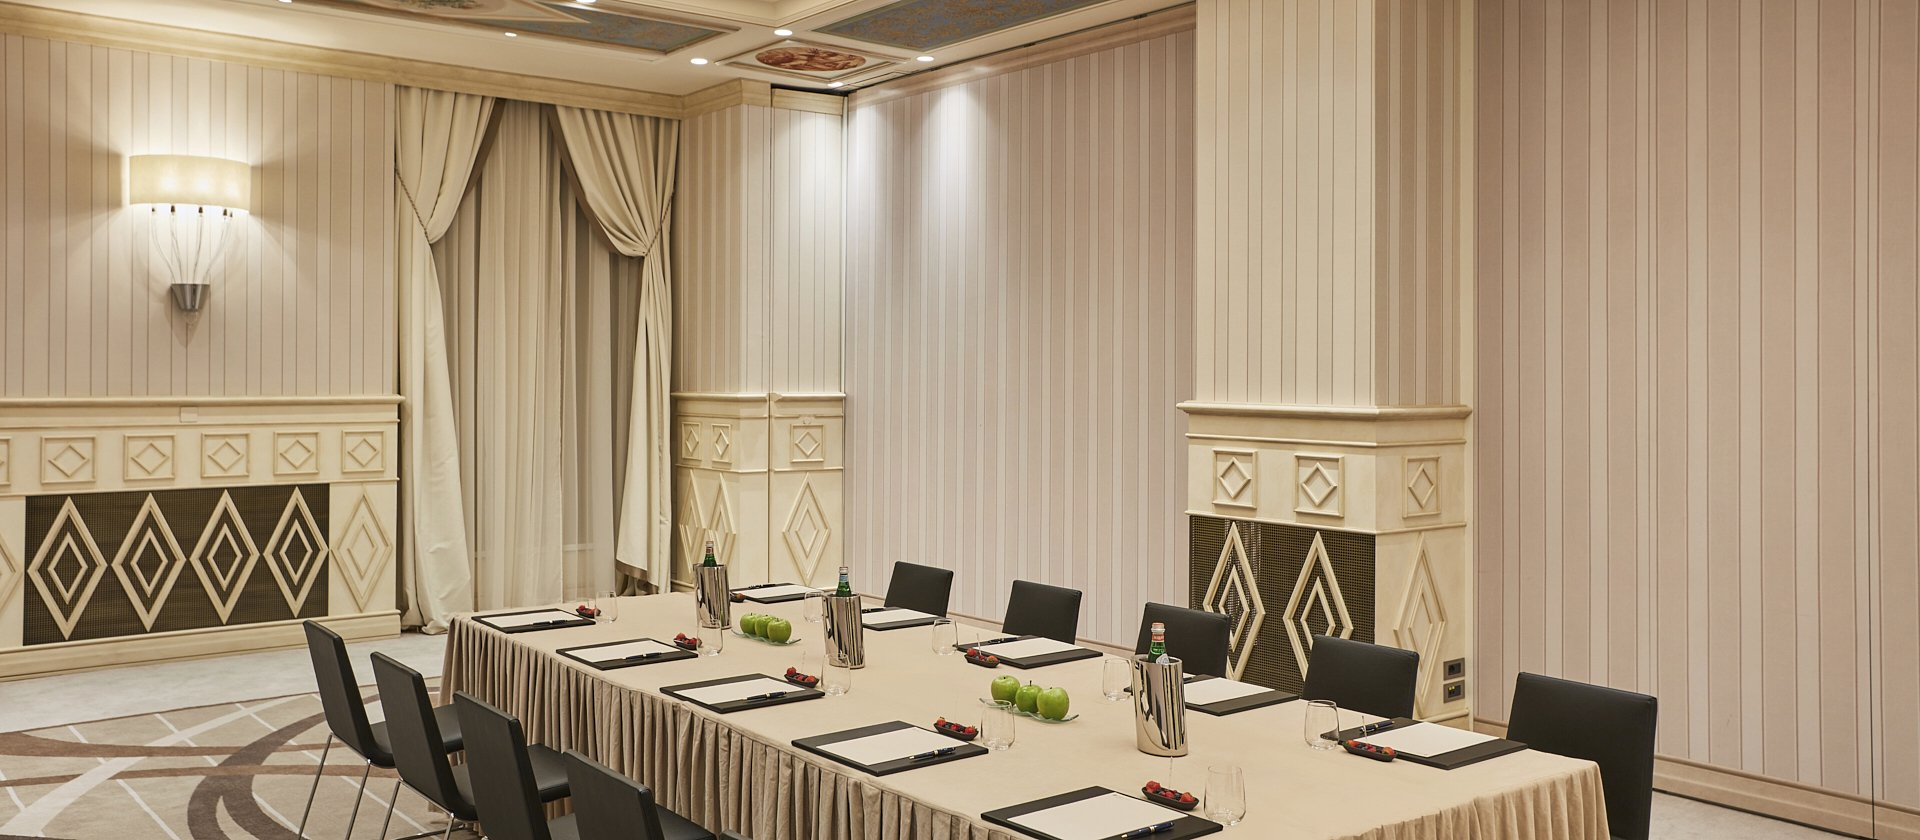 Hotel Principe di Savoia event spaces, Galilei B